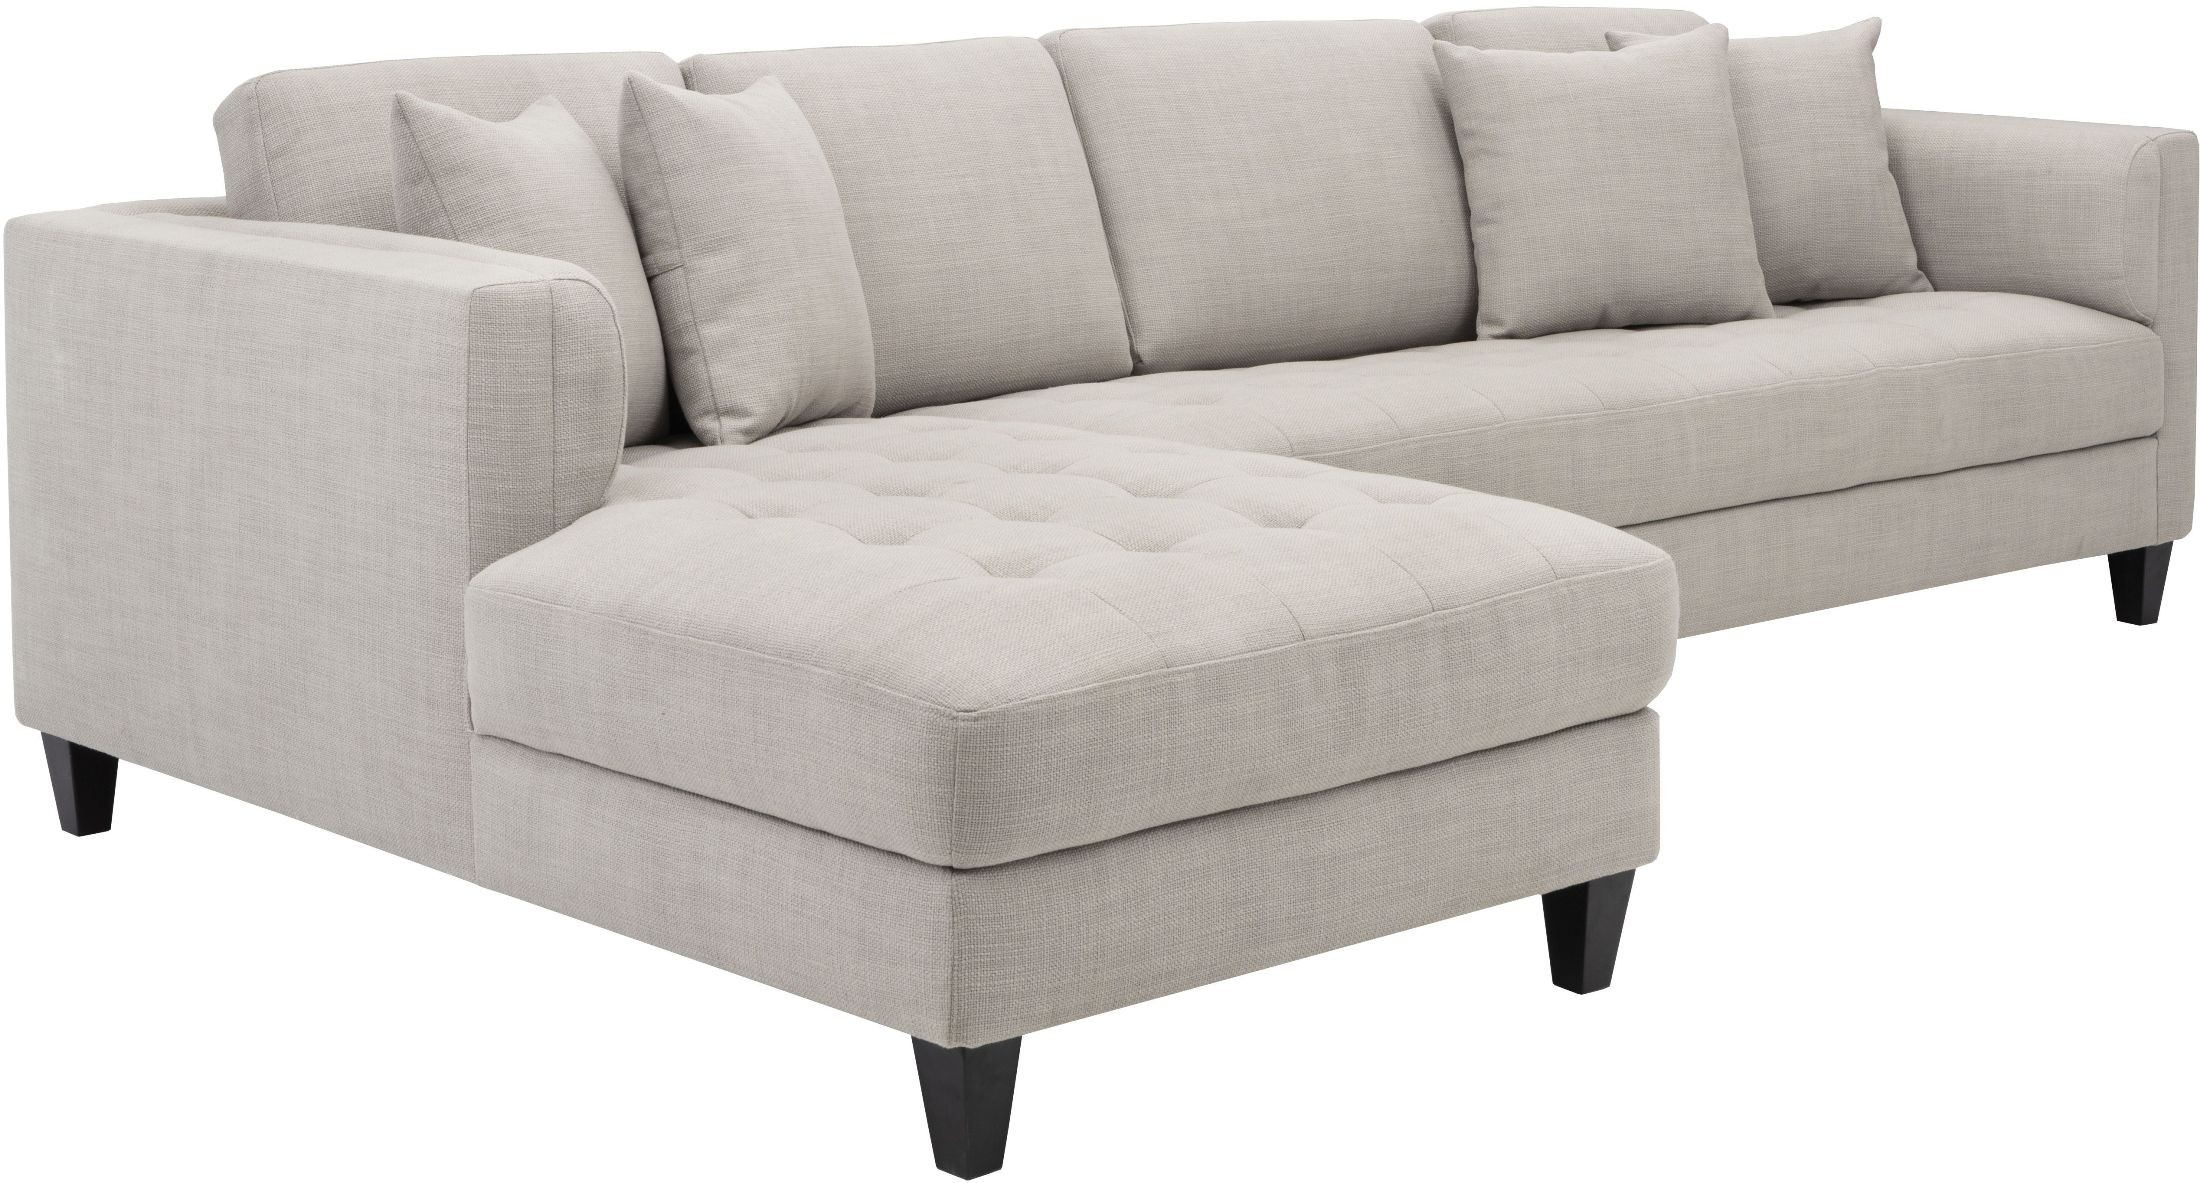 Arthur beige tweed upholstered laf sofa chaise from sunpan for Beige sectional with chaise